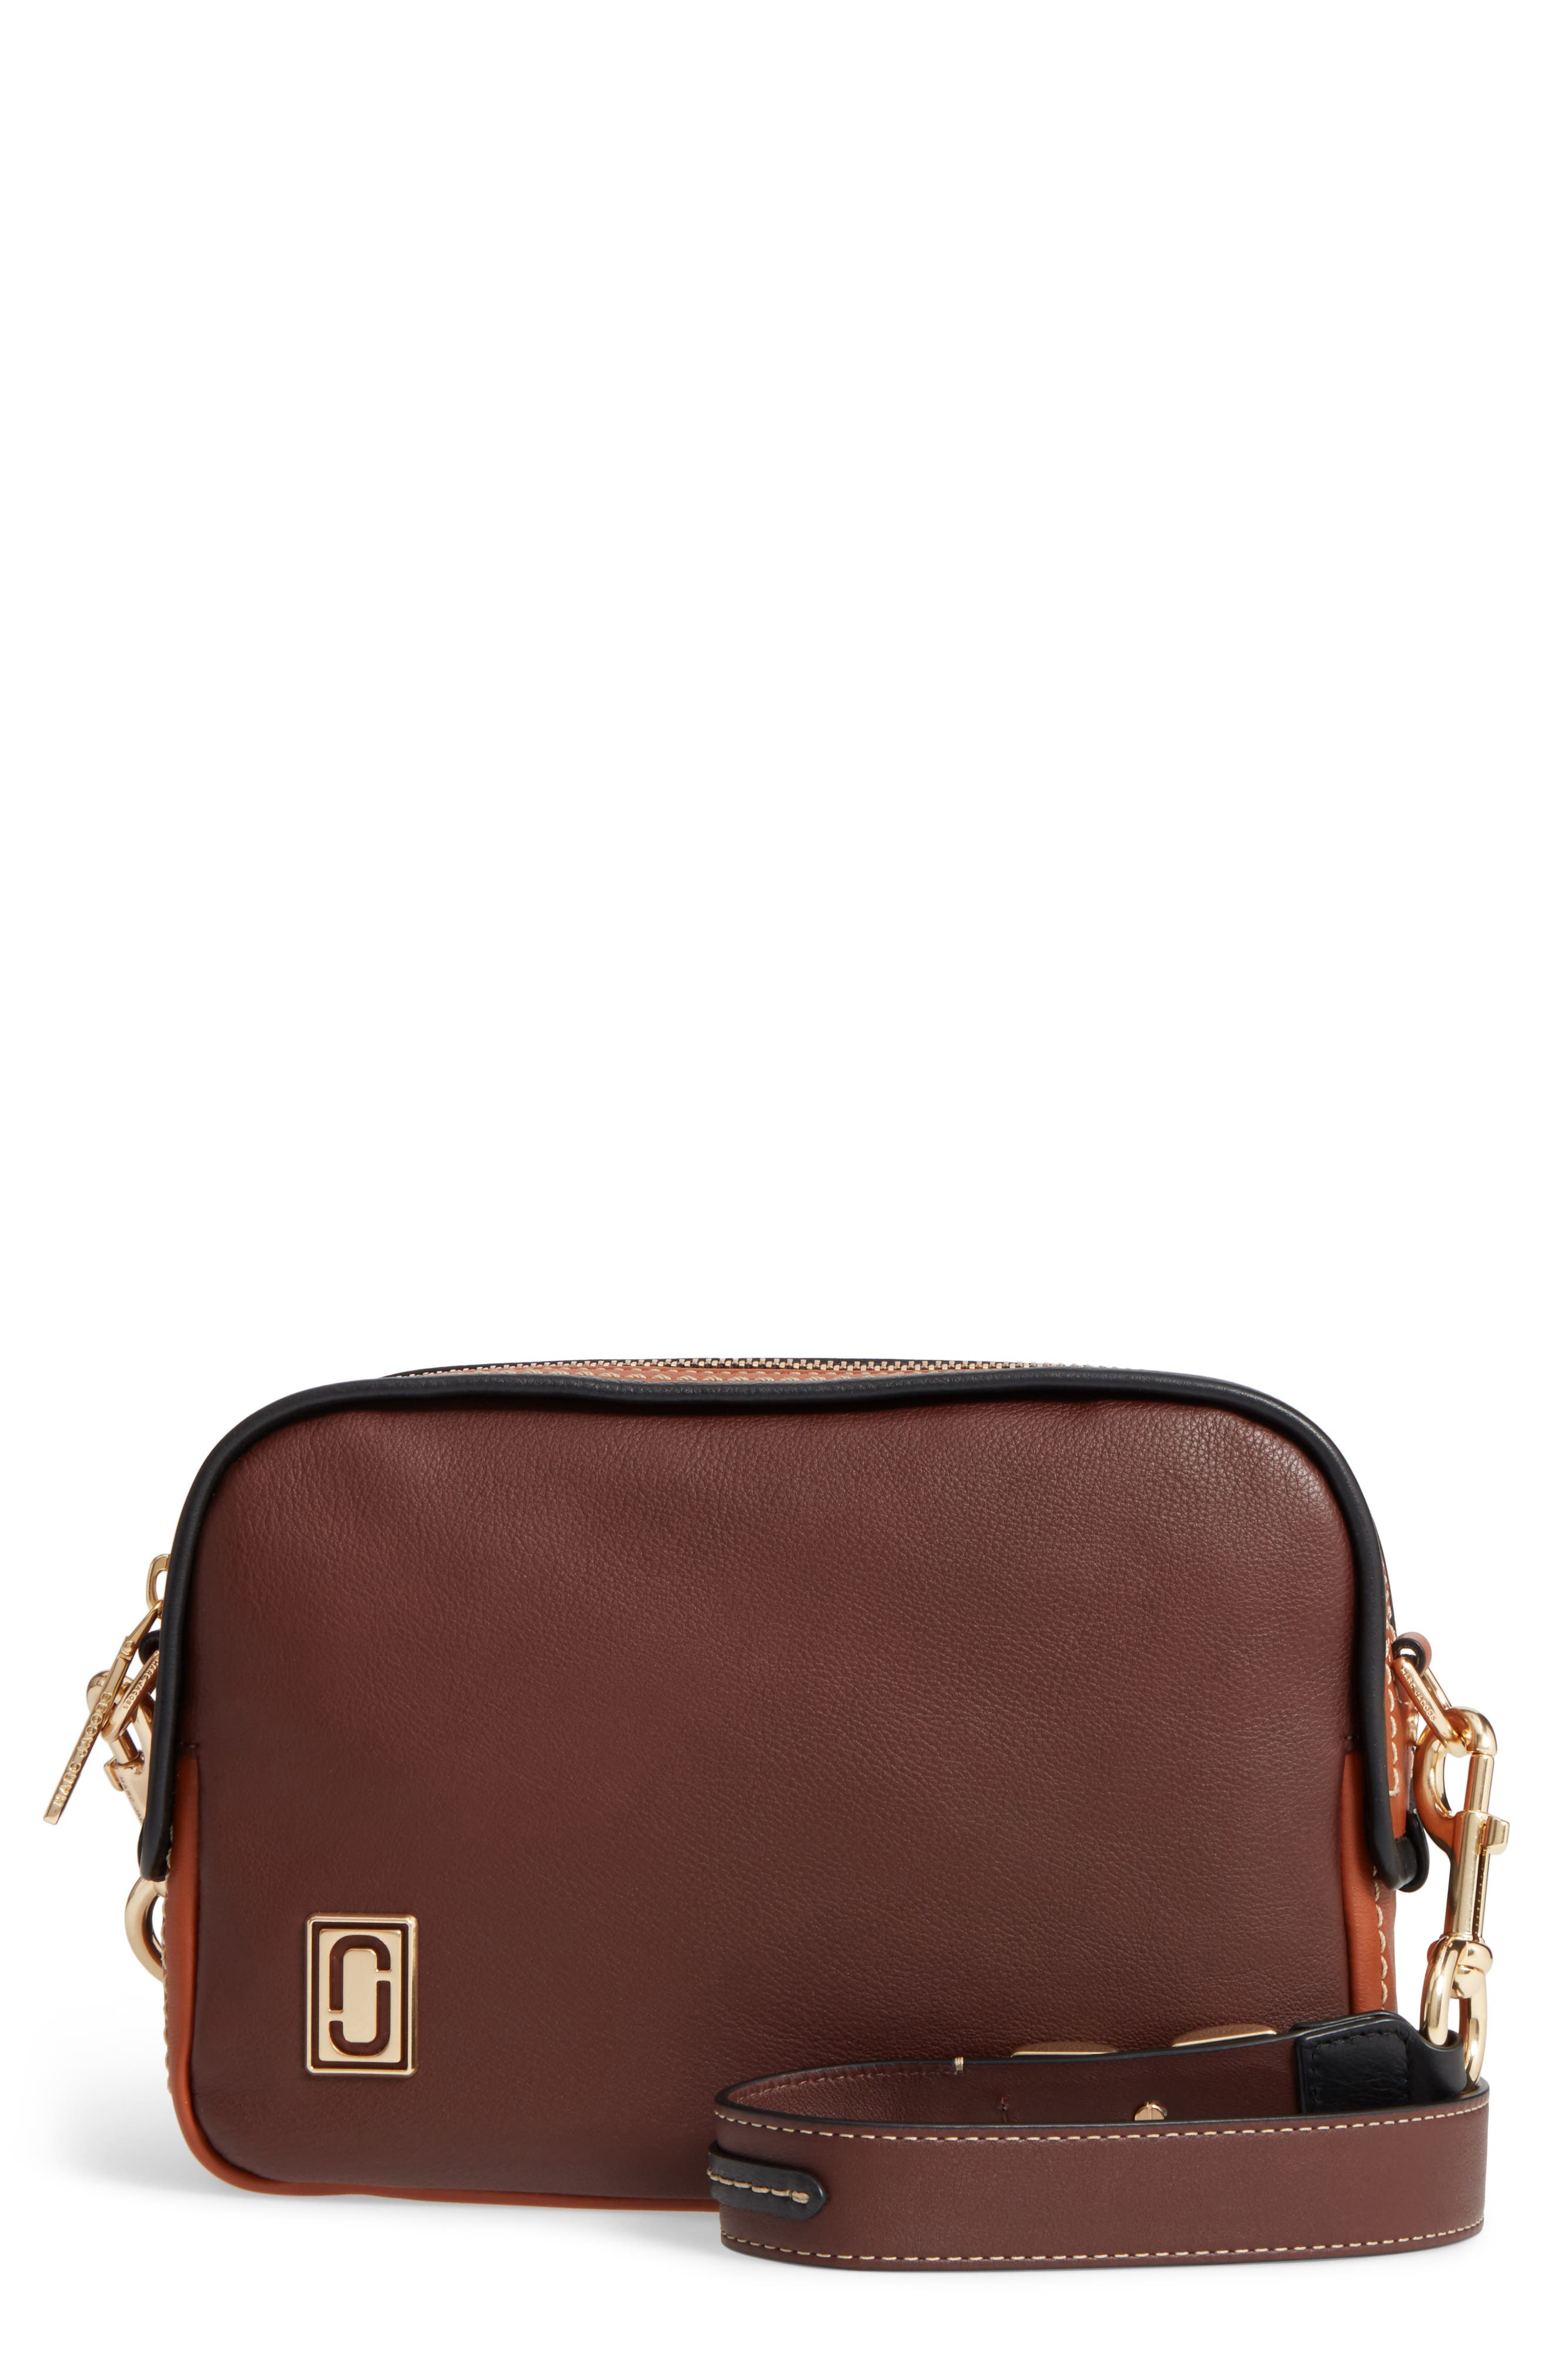 MARC JACOBS The Squeeze Leather Shoulder Bag